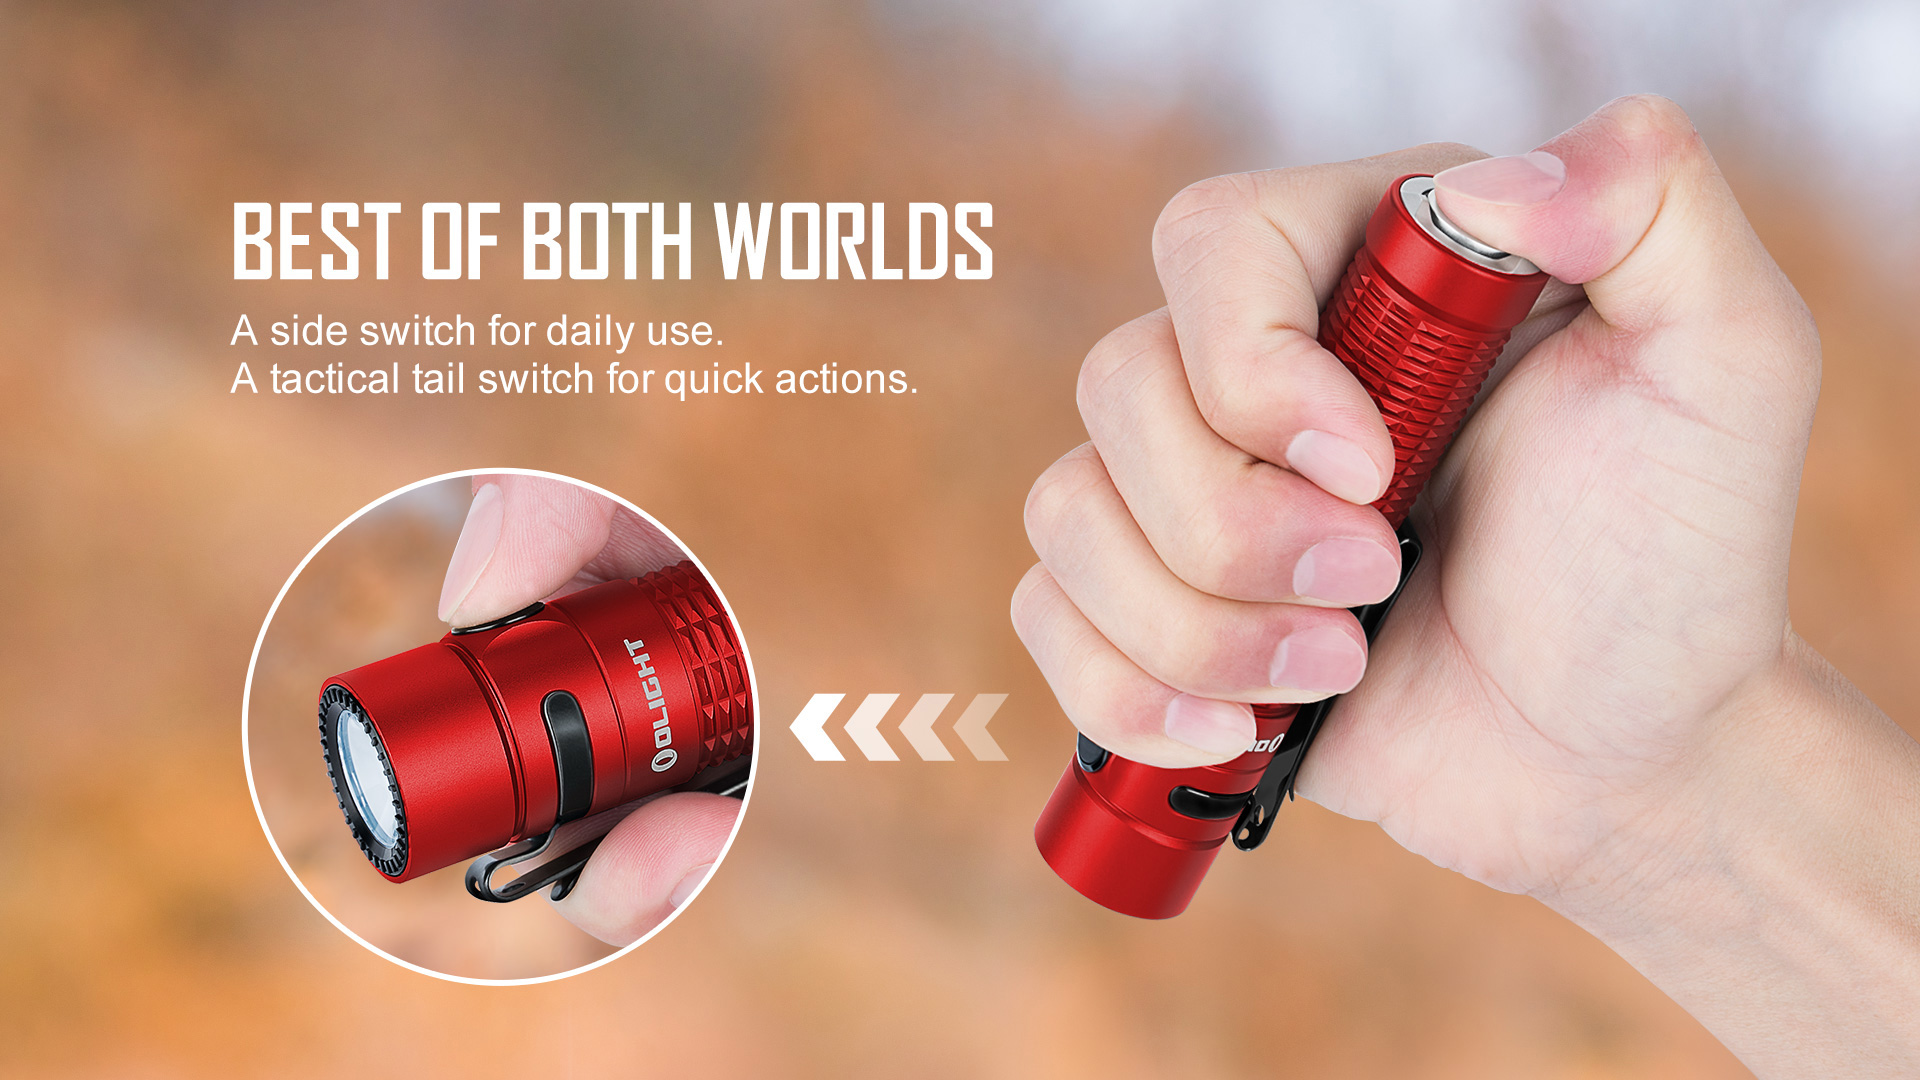 Double switch high end EDC flashlights